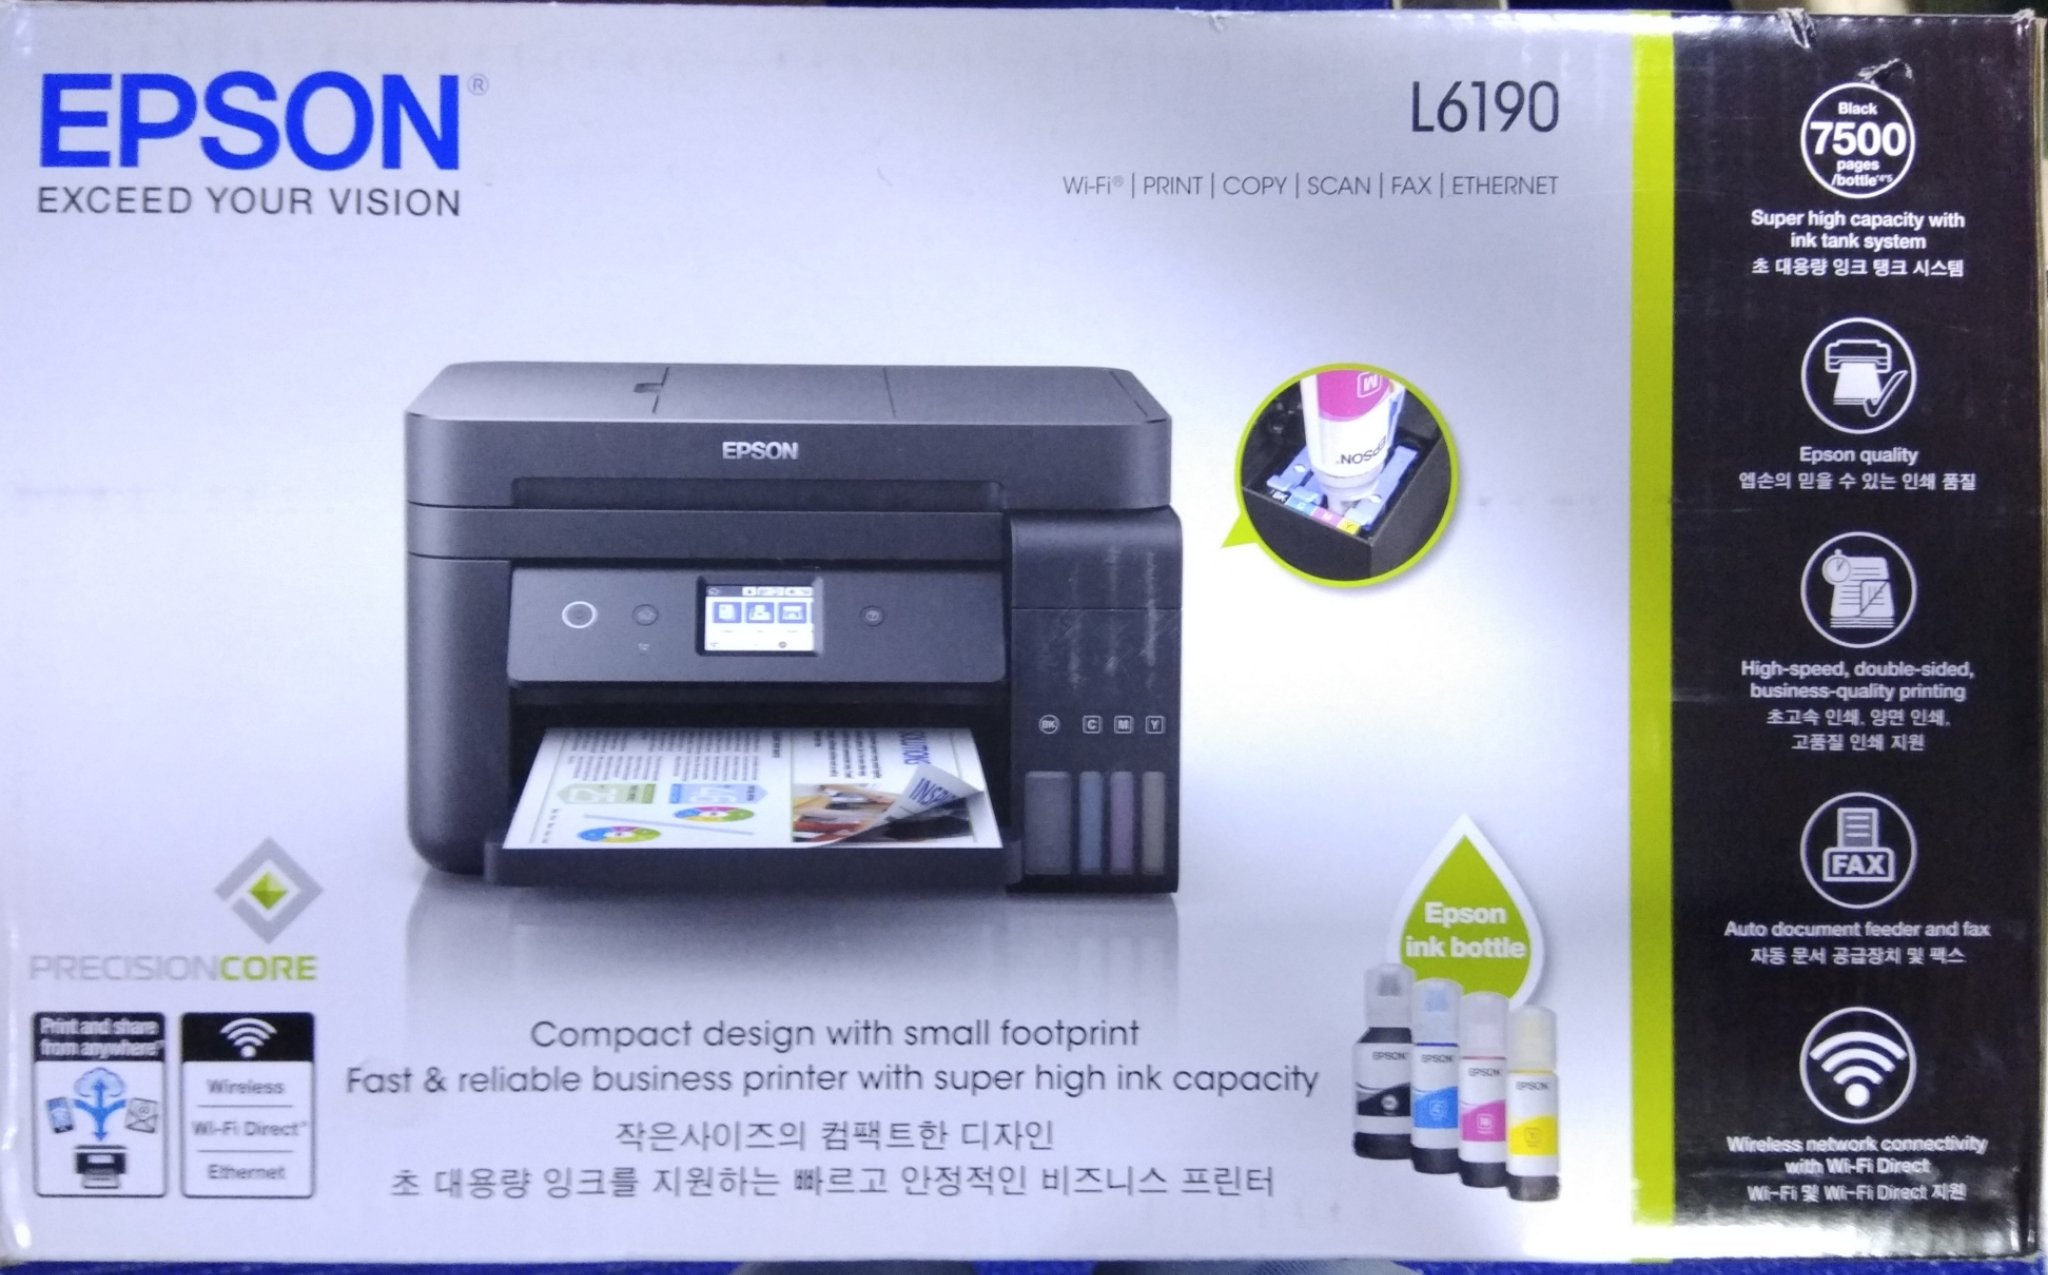 Epson L6190 Wi Fi Duplex All In One Ink Tank Printer With Adf Yellow C13t03y400 For L6170